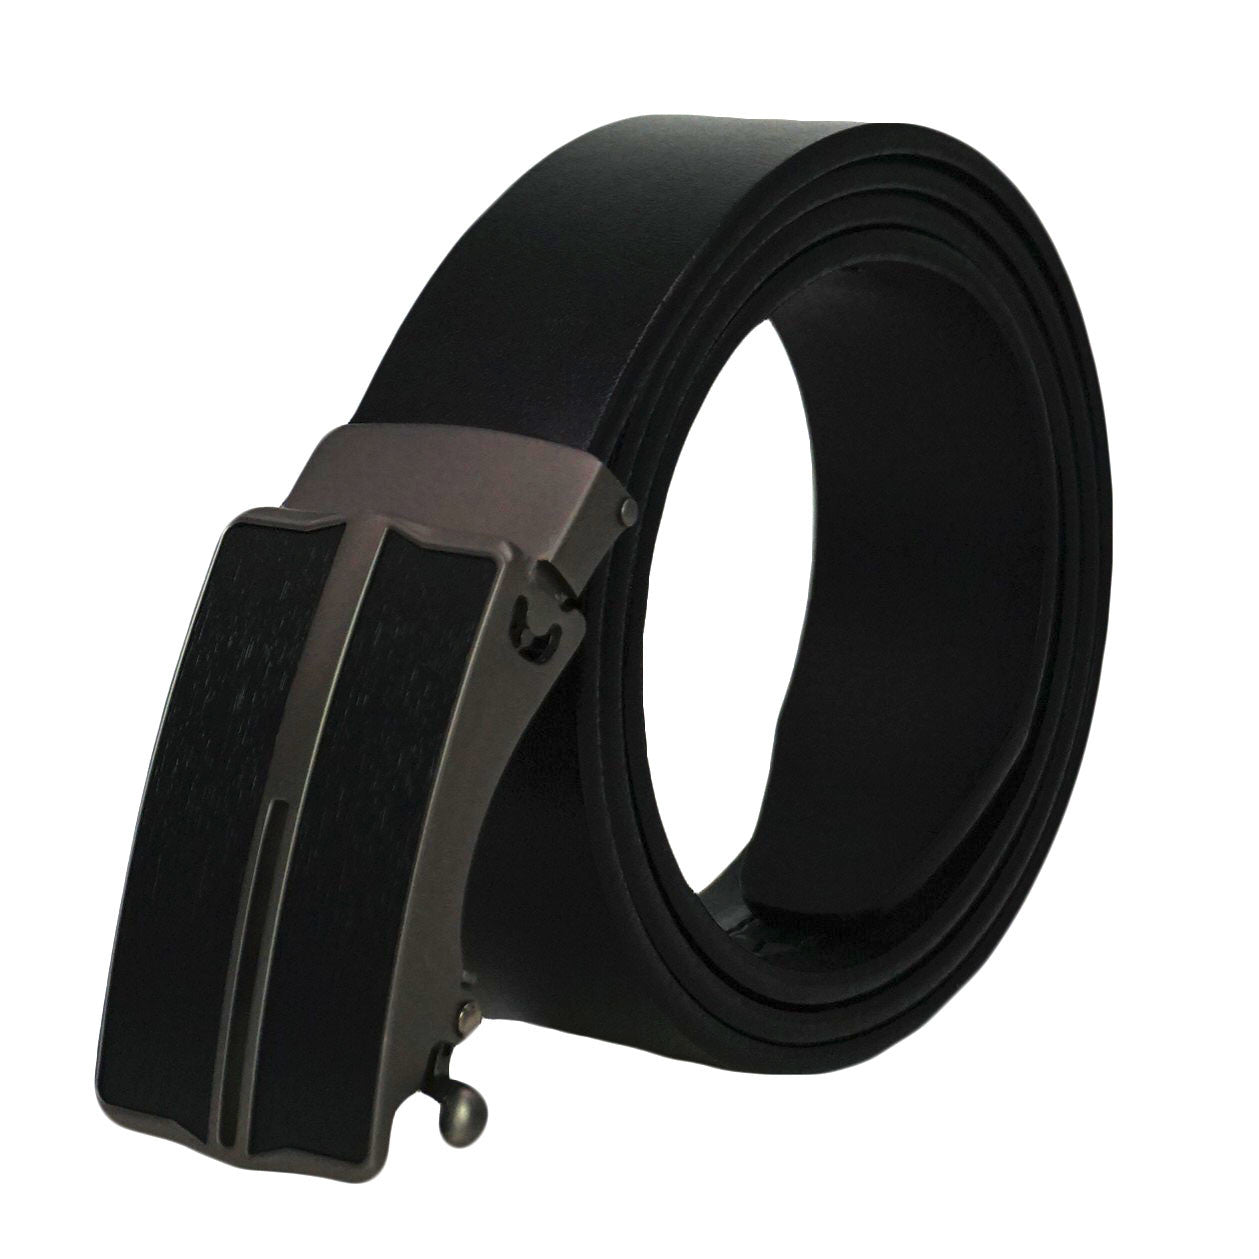 Men's Premium Formal Belt - Solid Top Grain Leather - Slide Ratchet Dress Belts